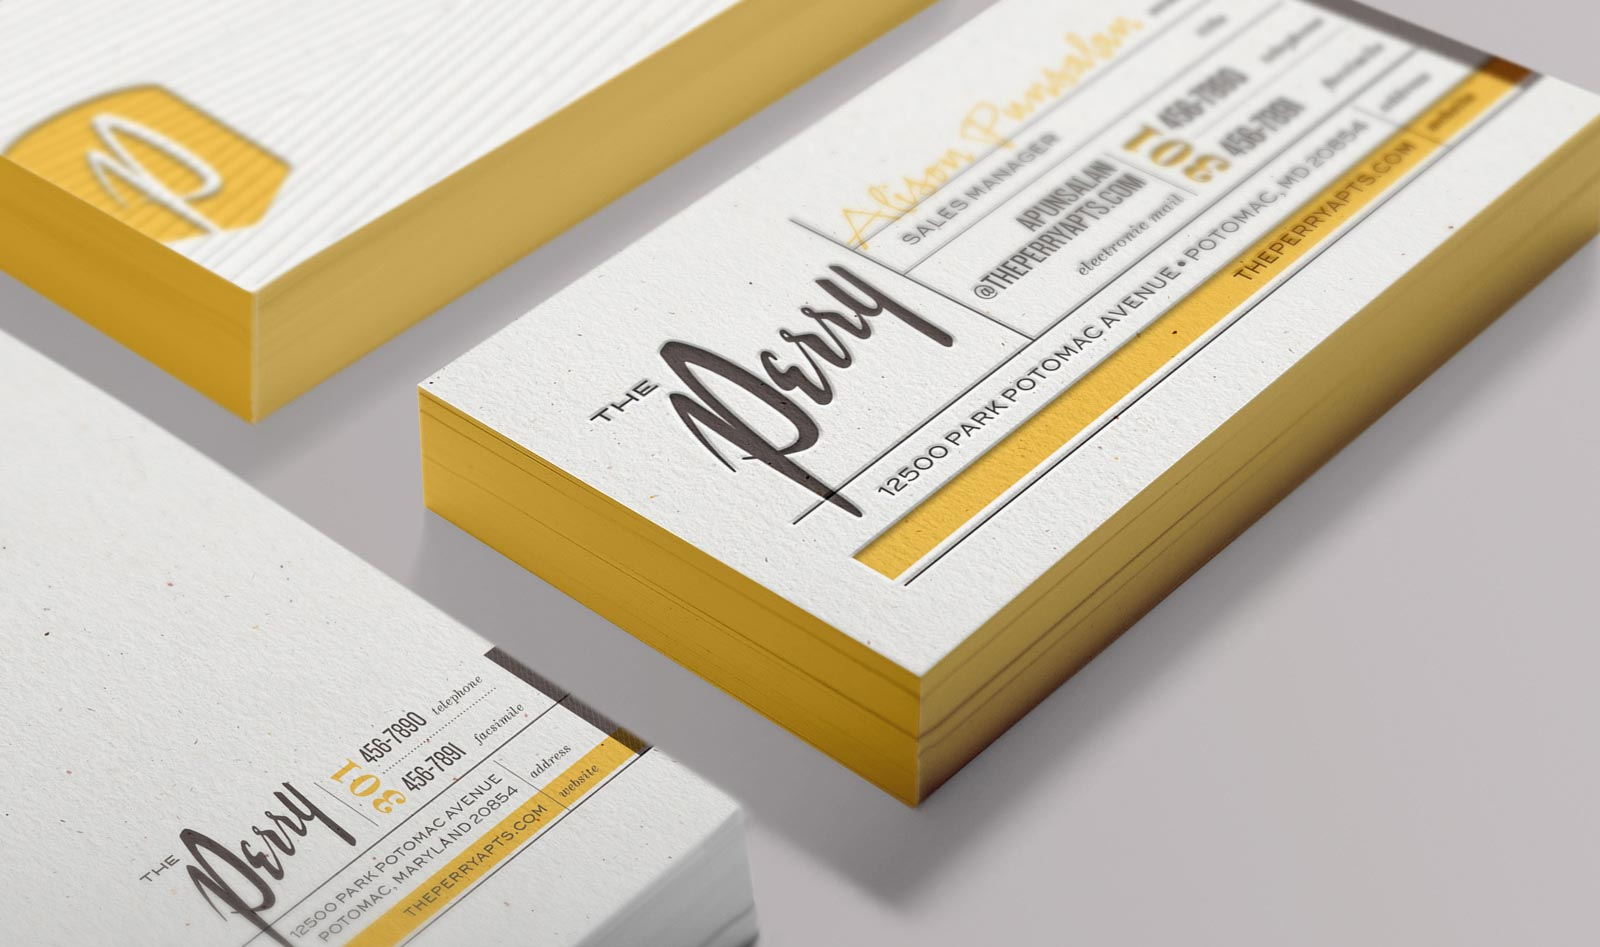 Business cards detail.